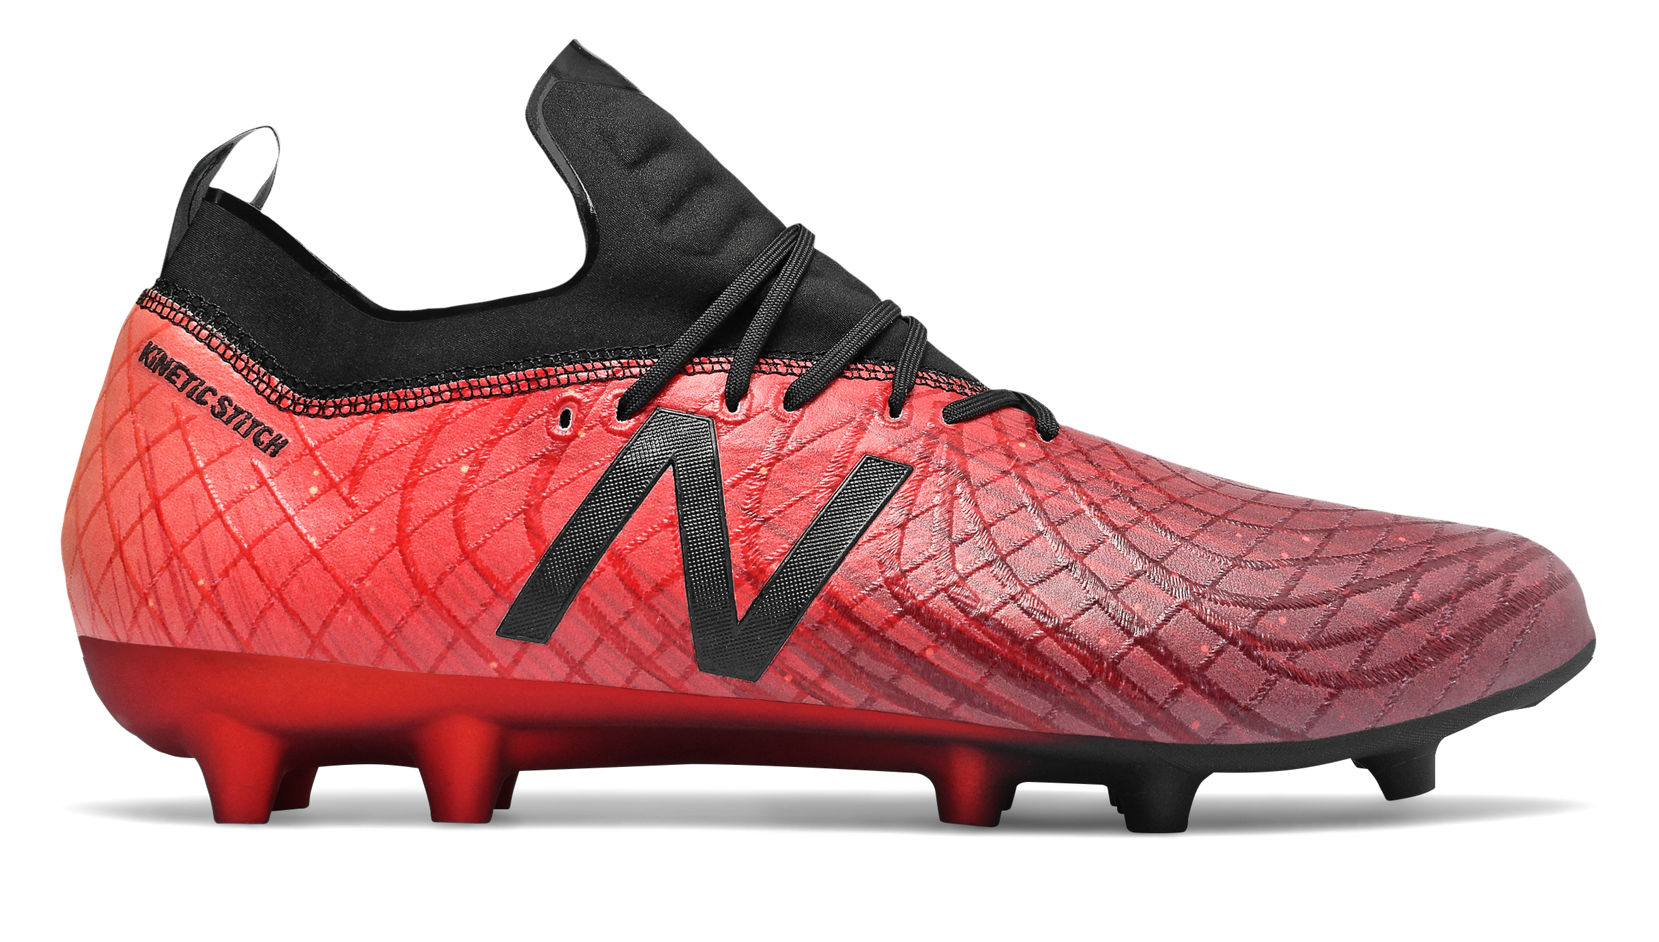 New Balance Red Lite Shift LE, Red with Black